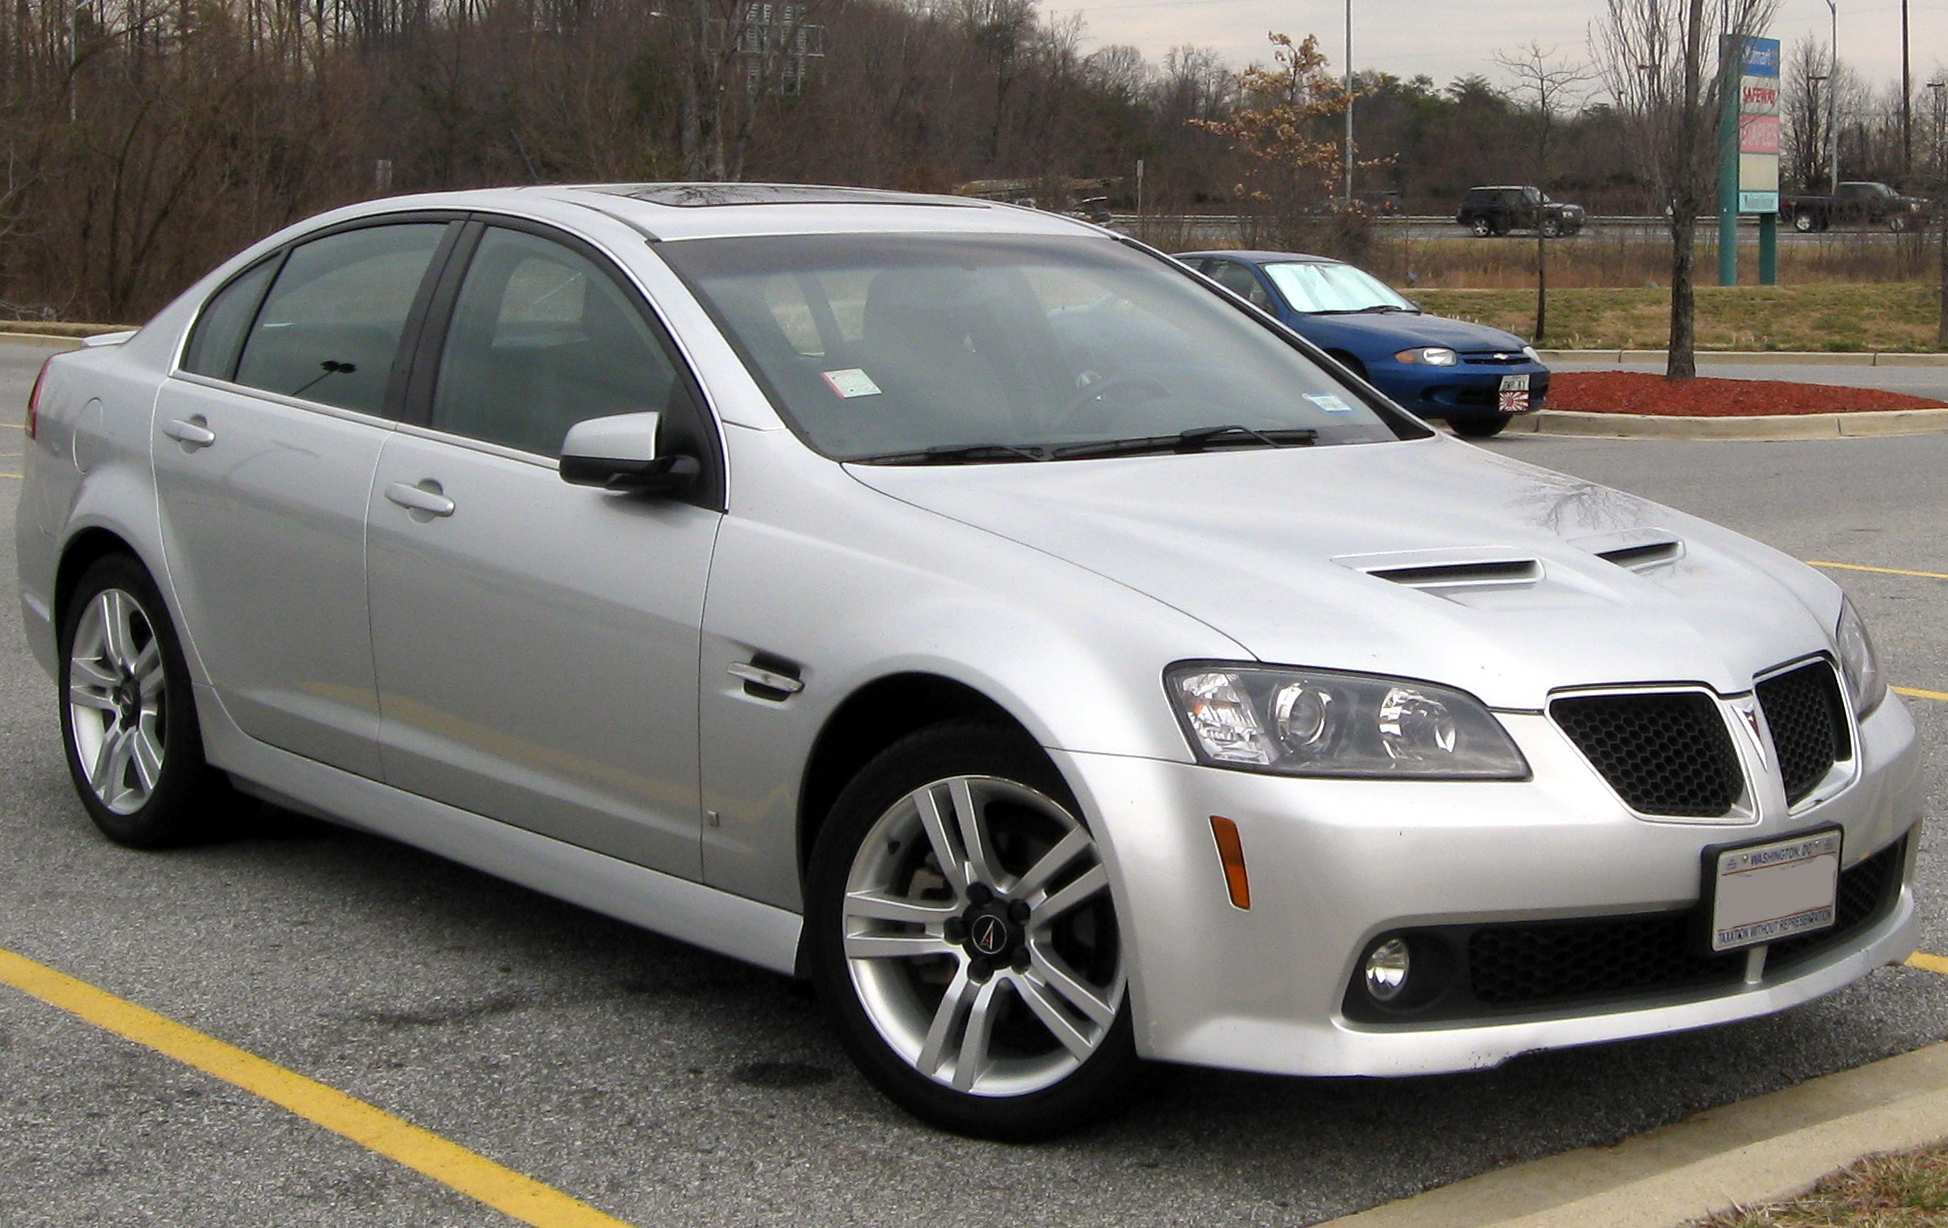 68 All New Pontiac G8 Images Spesification by Pontiac G8 Images